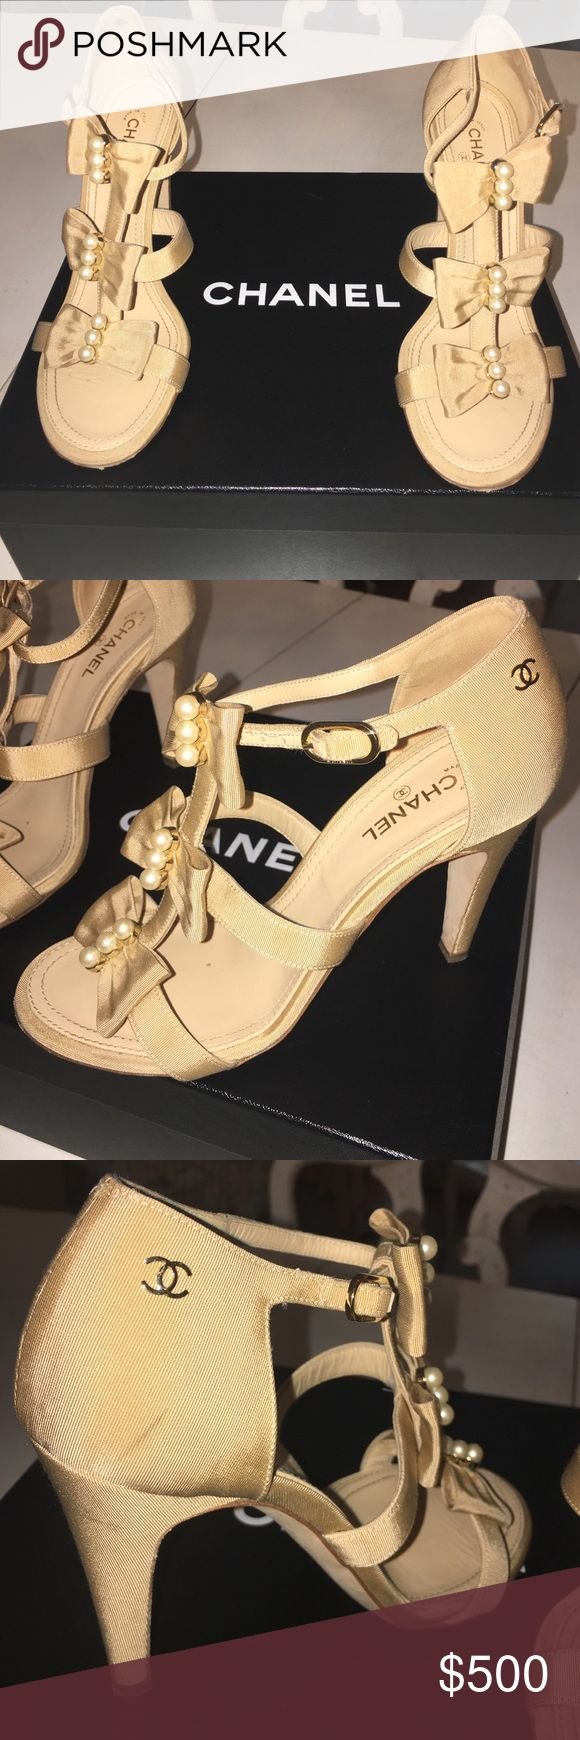 Authentic Chanel heels Authentic Chanel heels. Color is cream with cream bows and pearls one little stain on the side wore three times CHANEL Shoes Heels